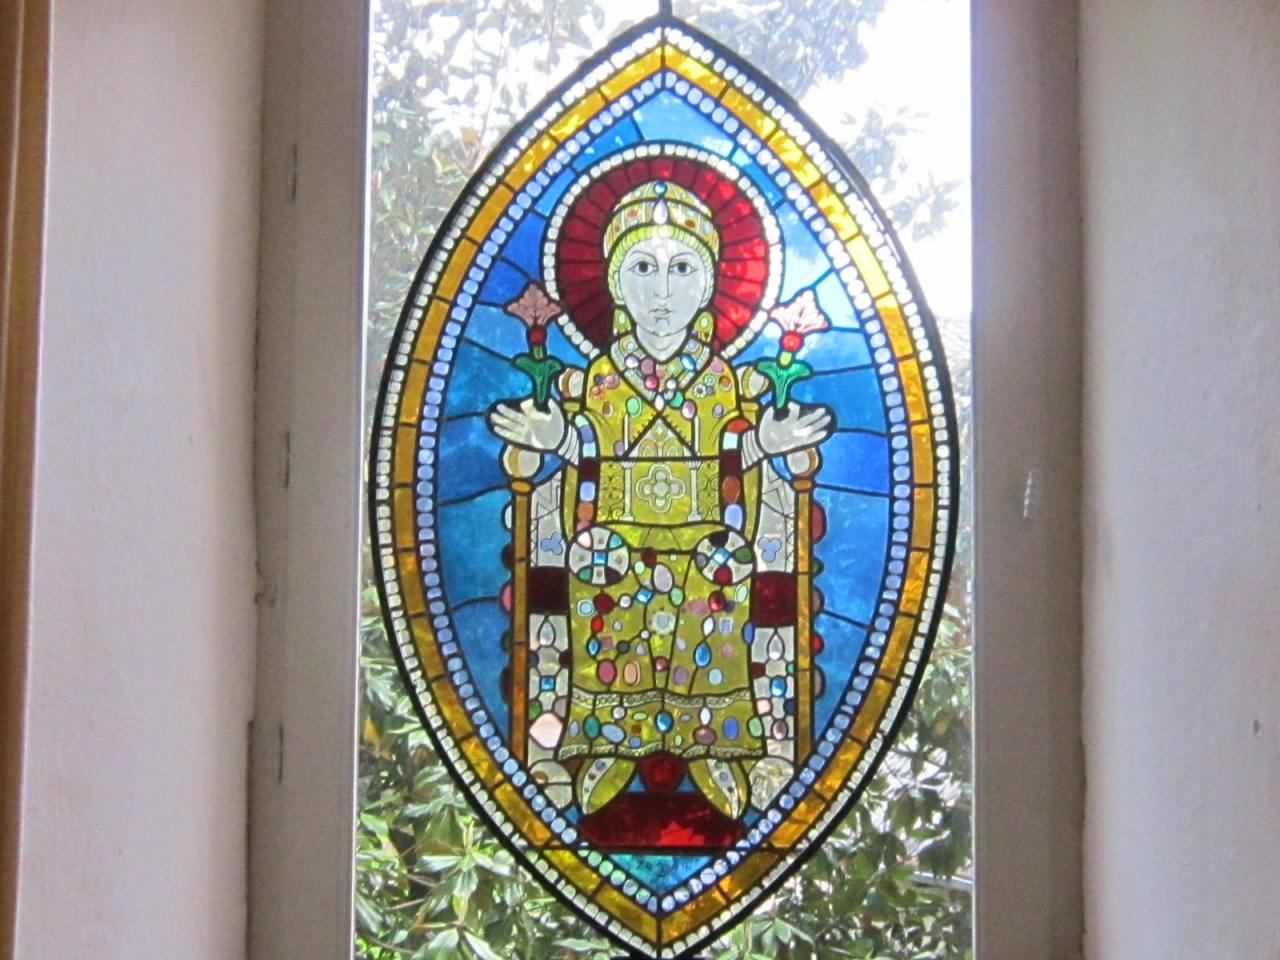 Sainte Foy stained glass window at Conques on Le Puy Way